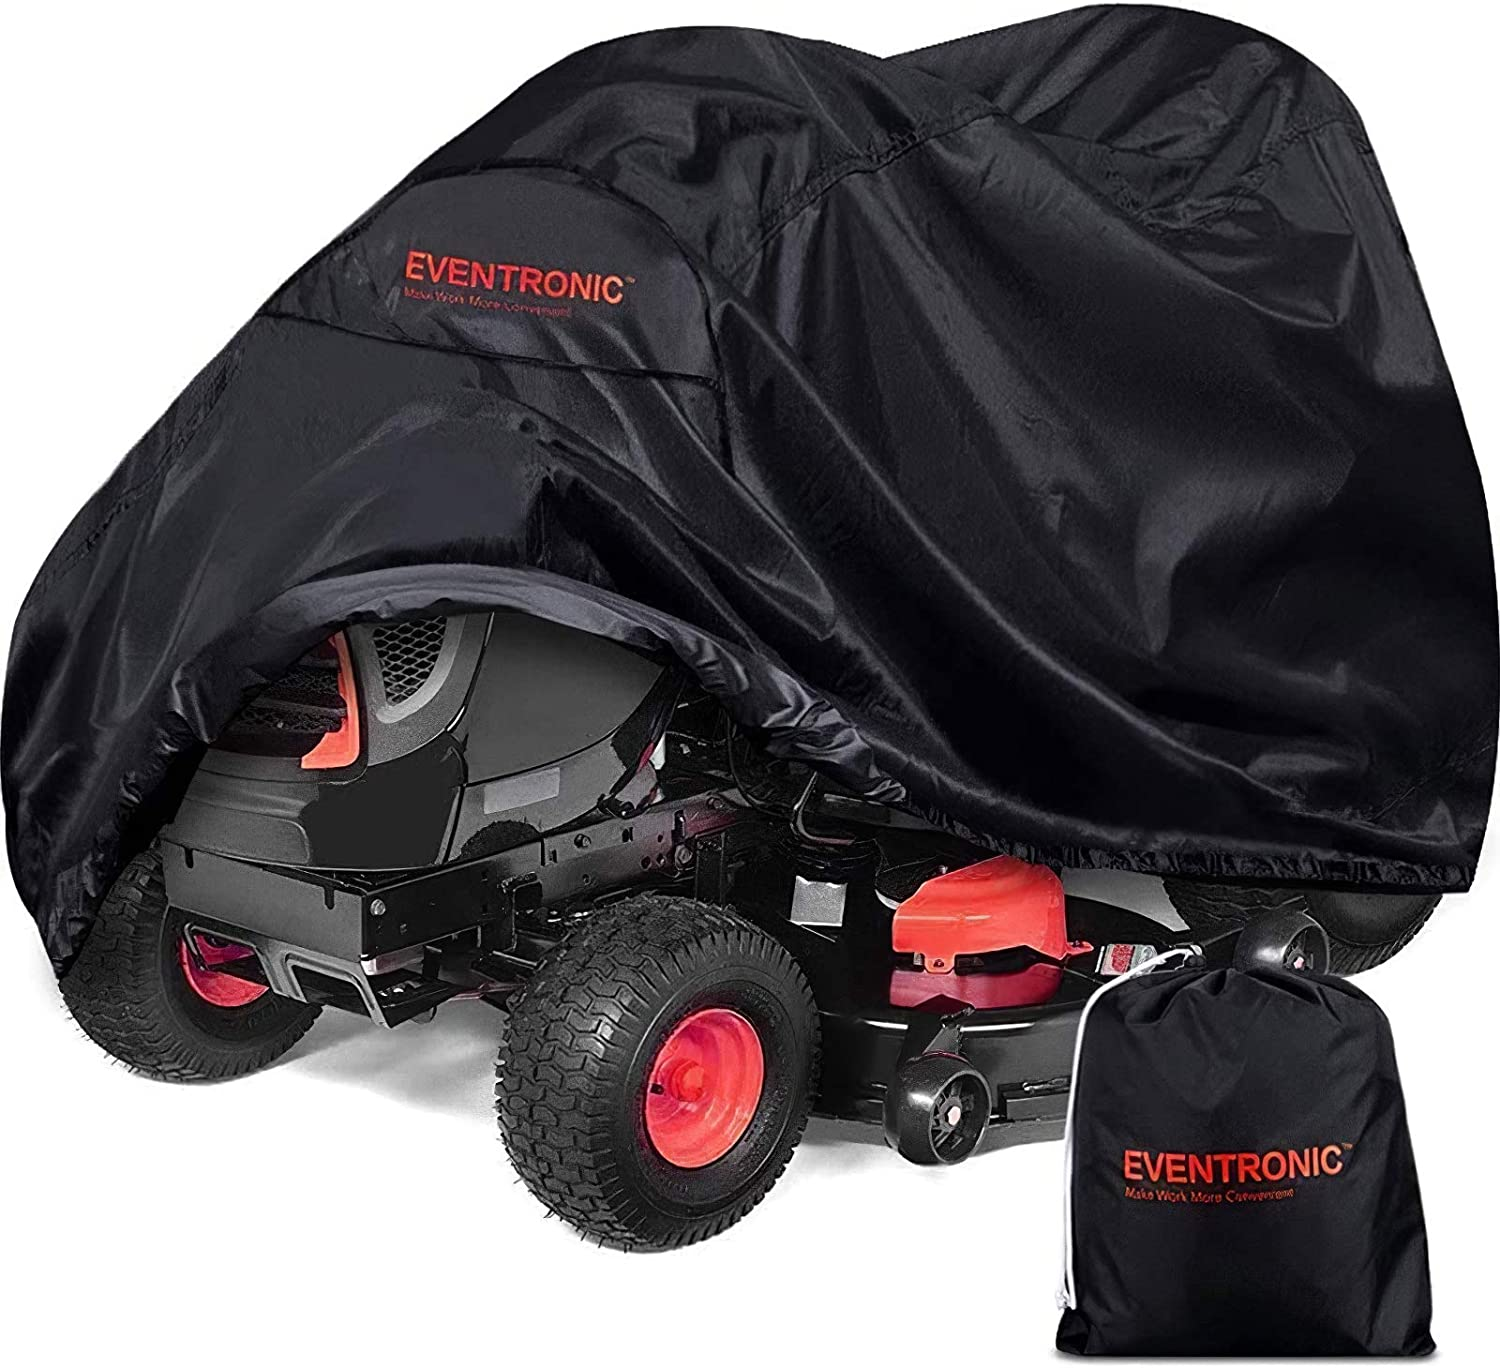 Eventronic Riding Lawn Mower Cover